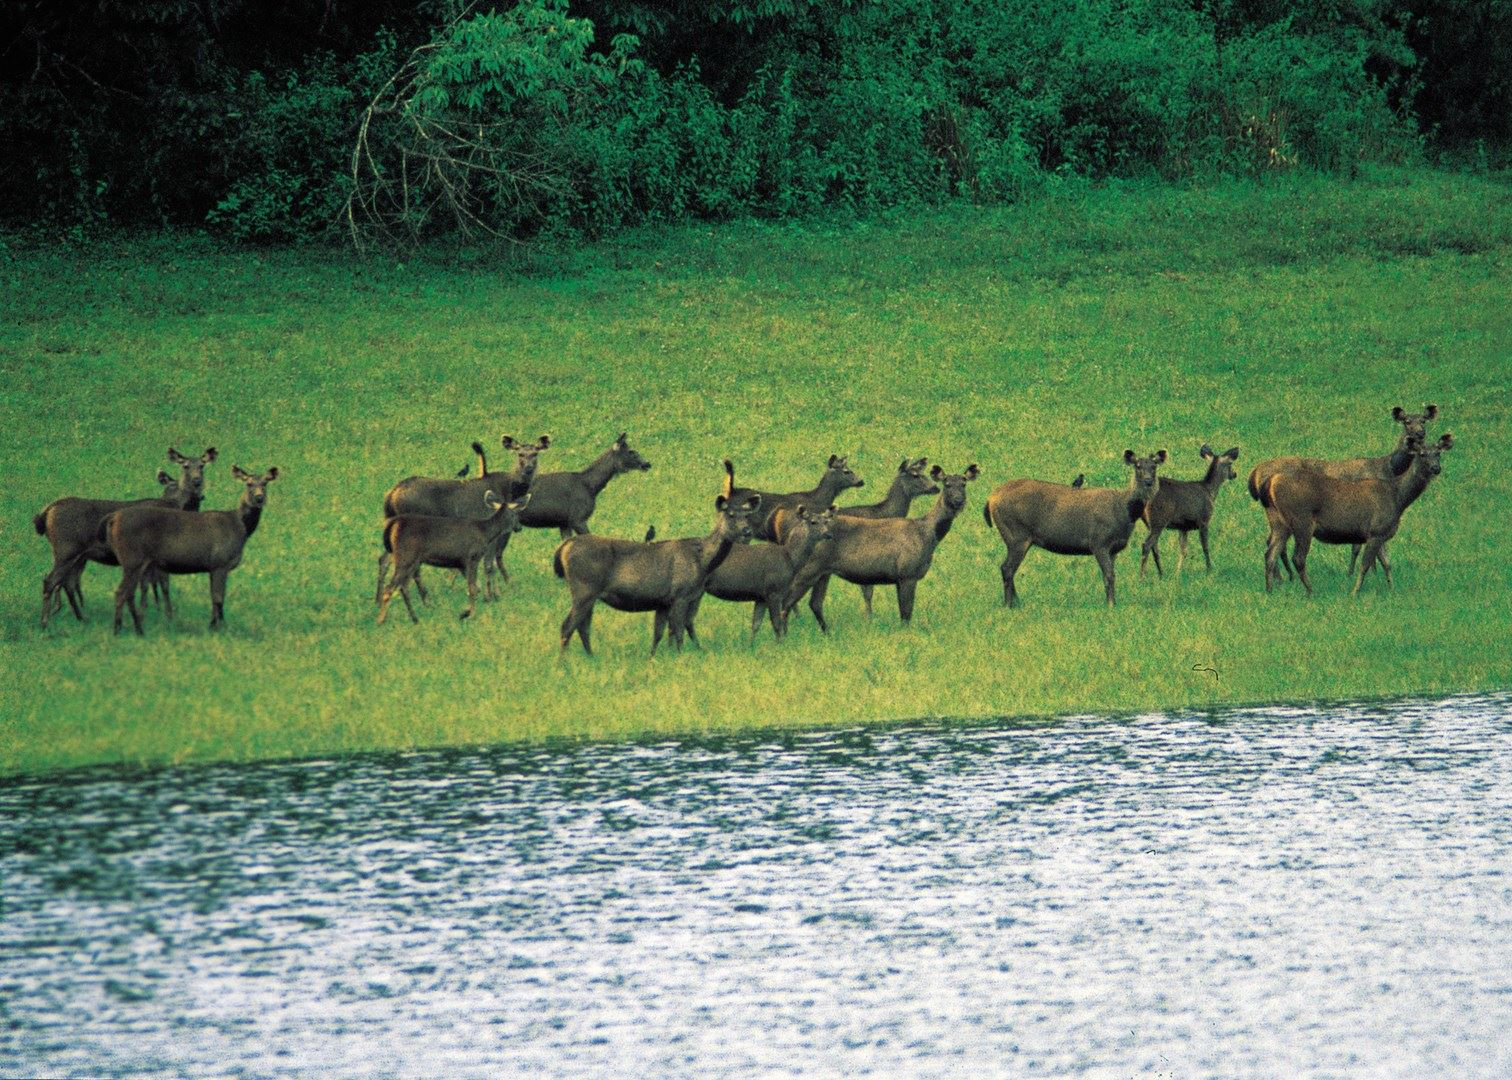 National park pictures in india Sanjay Gandhi National Park - Wikipedia